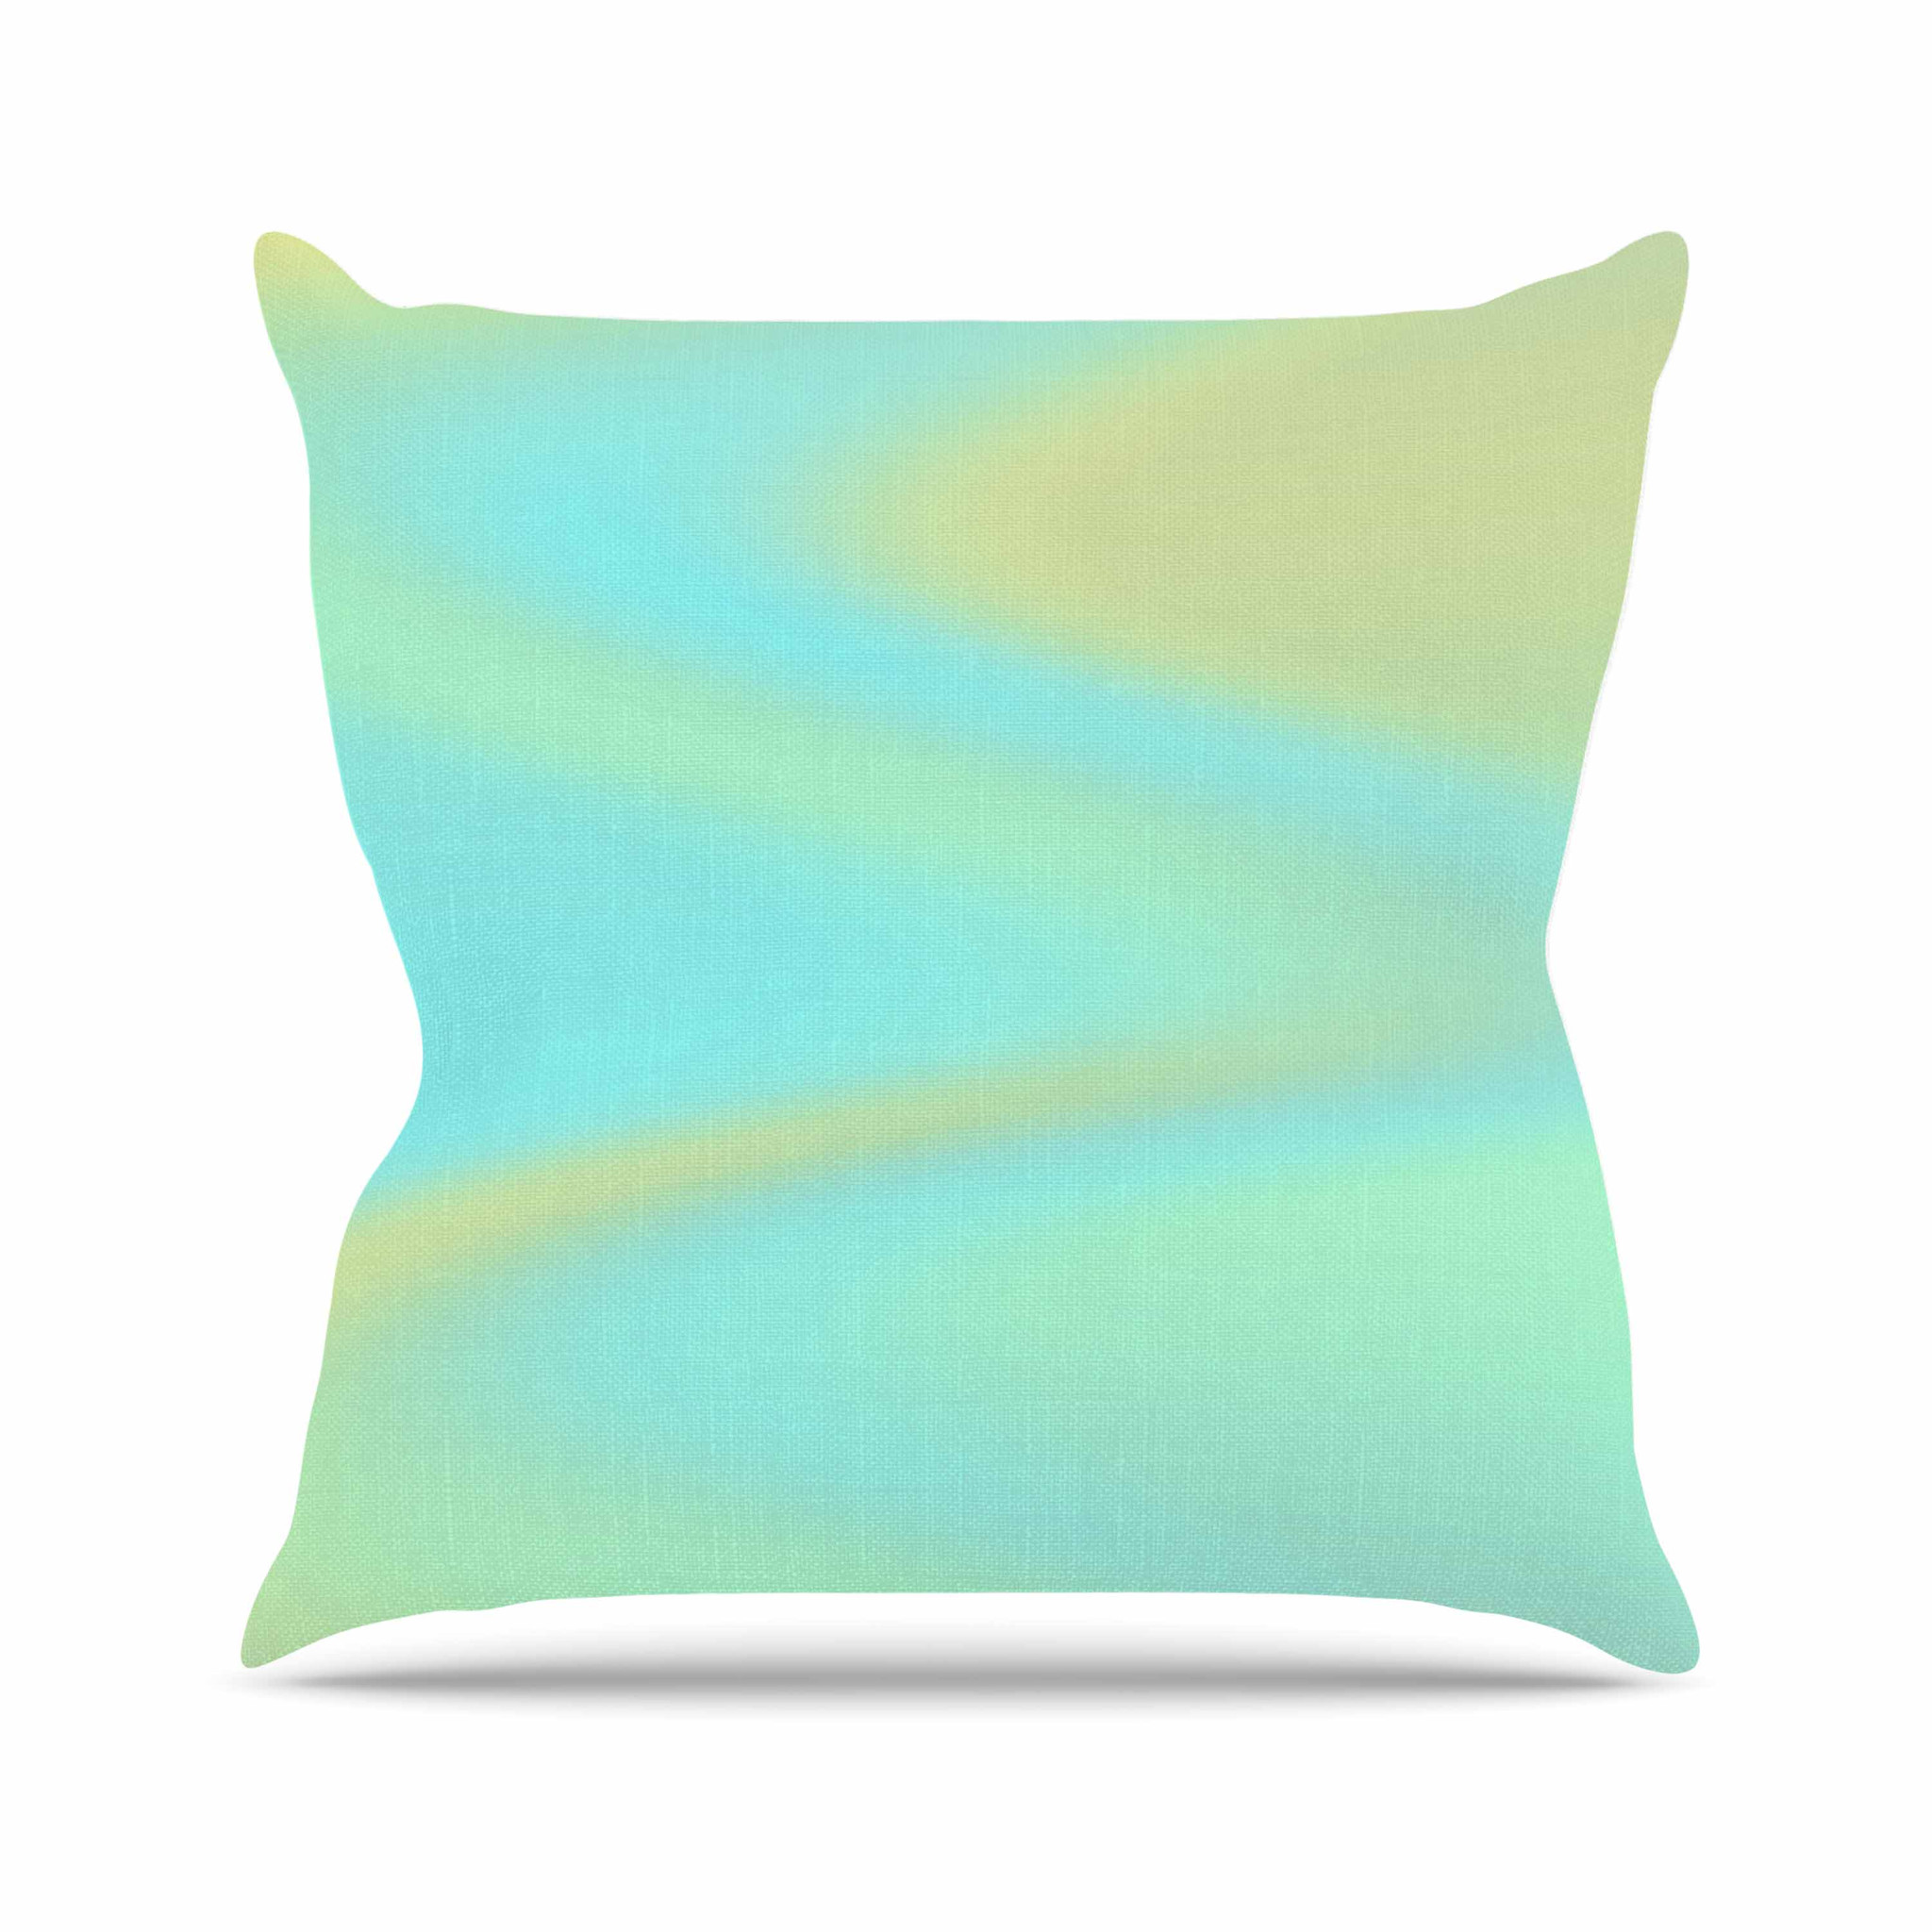 Interior Cute Cushions Teal Throw Pillows For Queen Bed Size King  ~ What Size Throw Pillow For Sofa